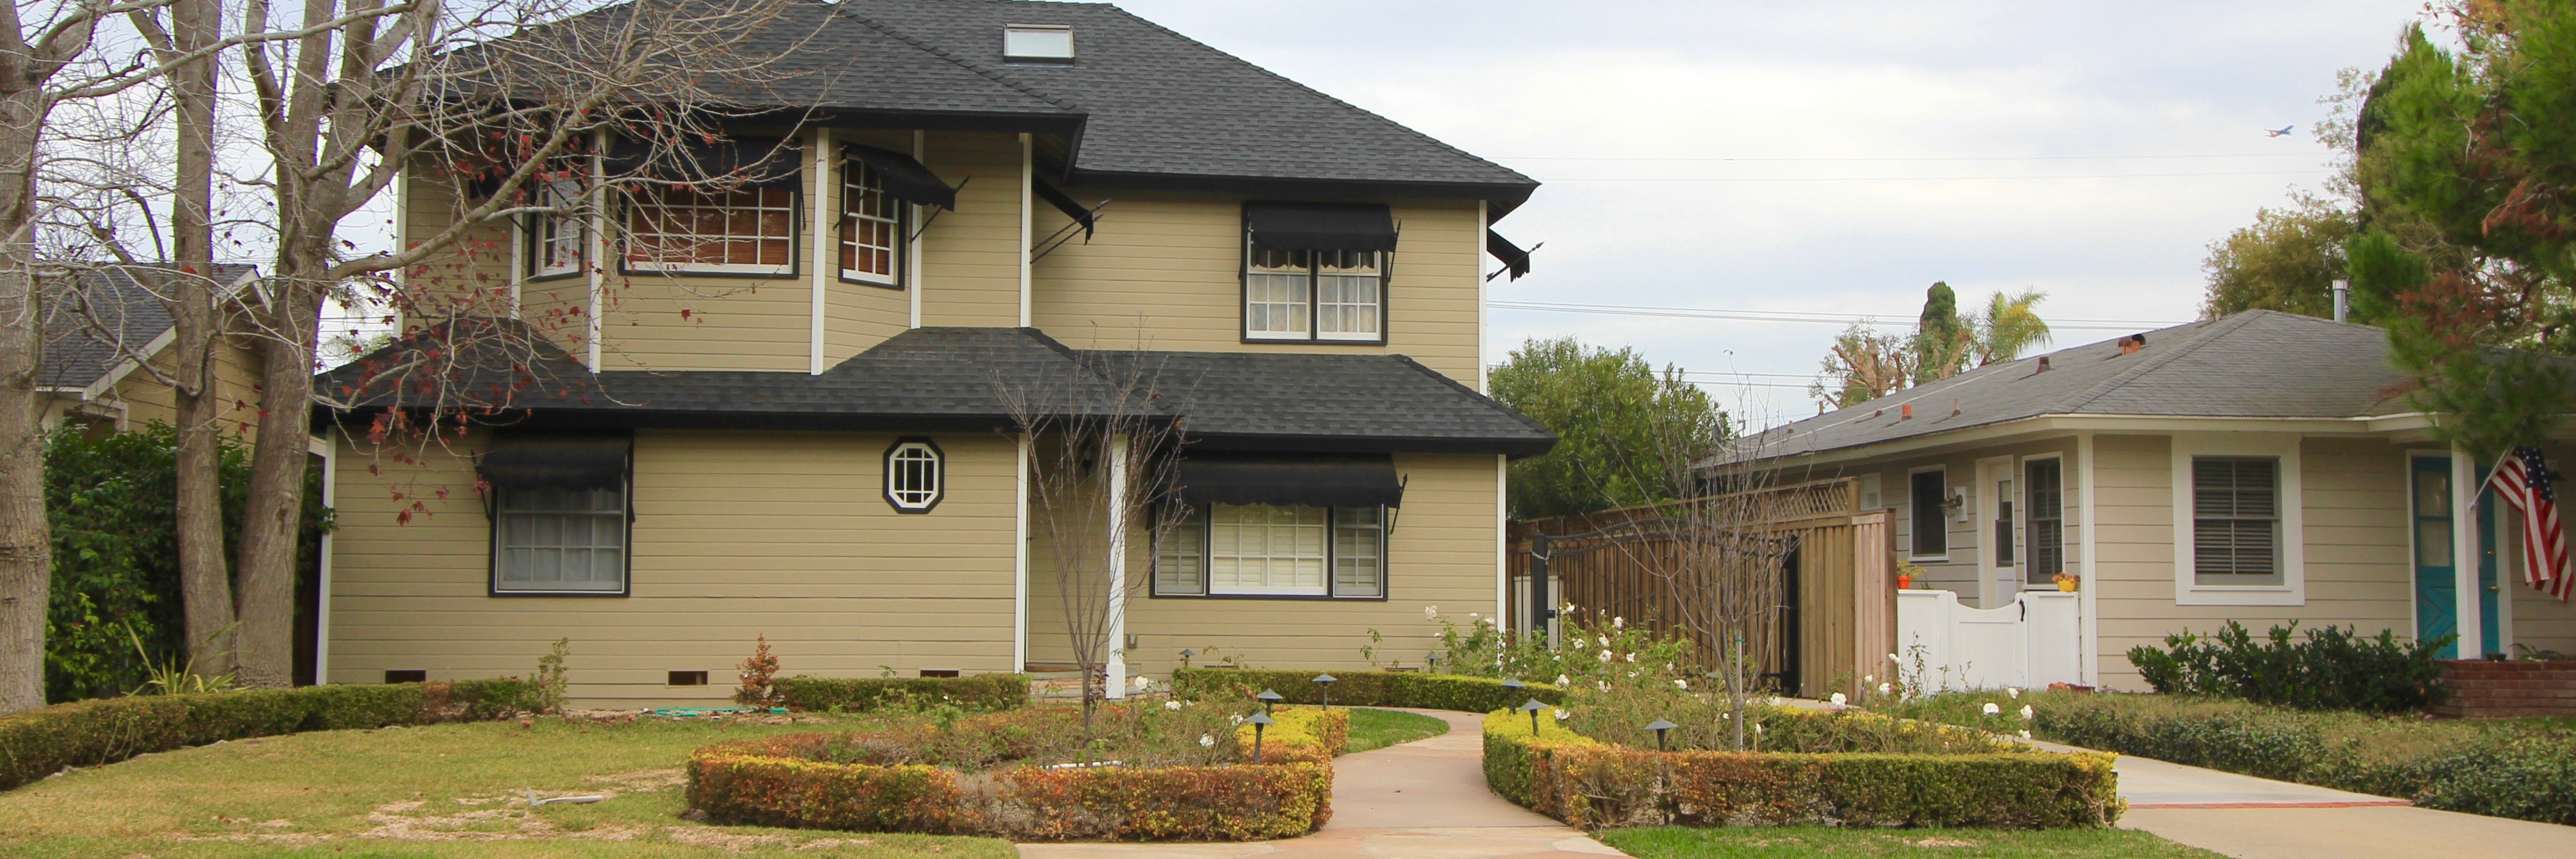 Eastside Costa Mesa is a community located in Costa Mesa CA